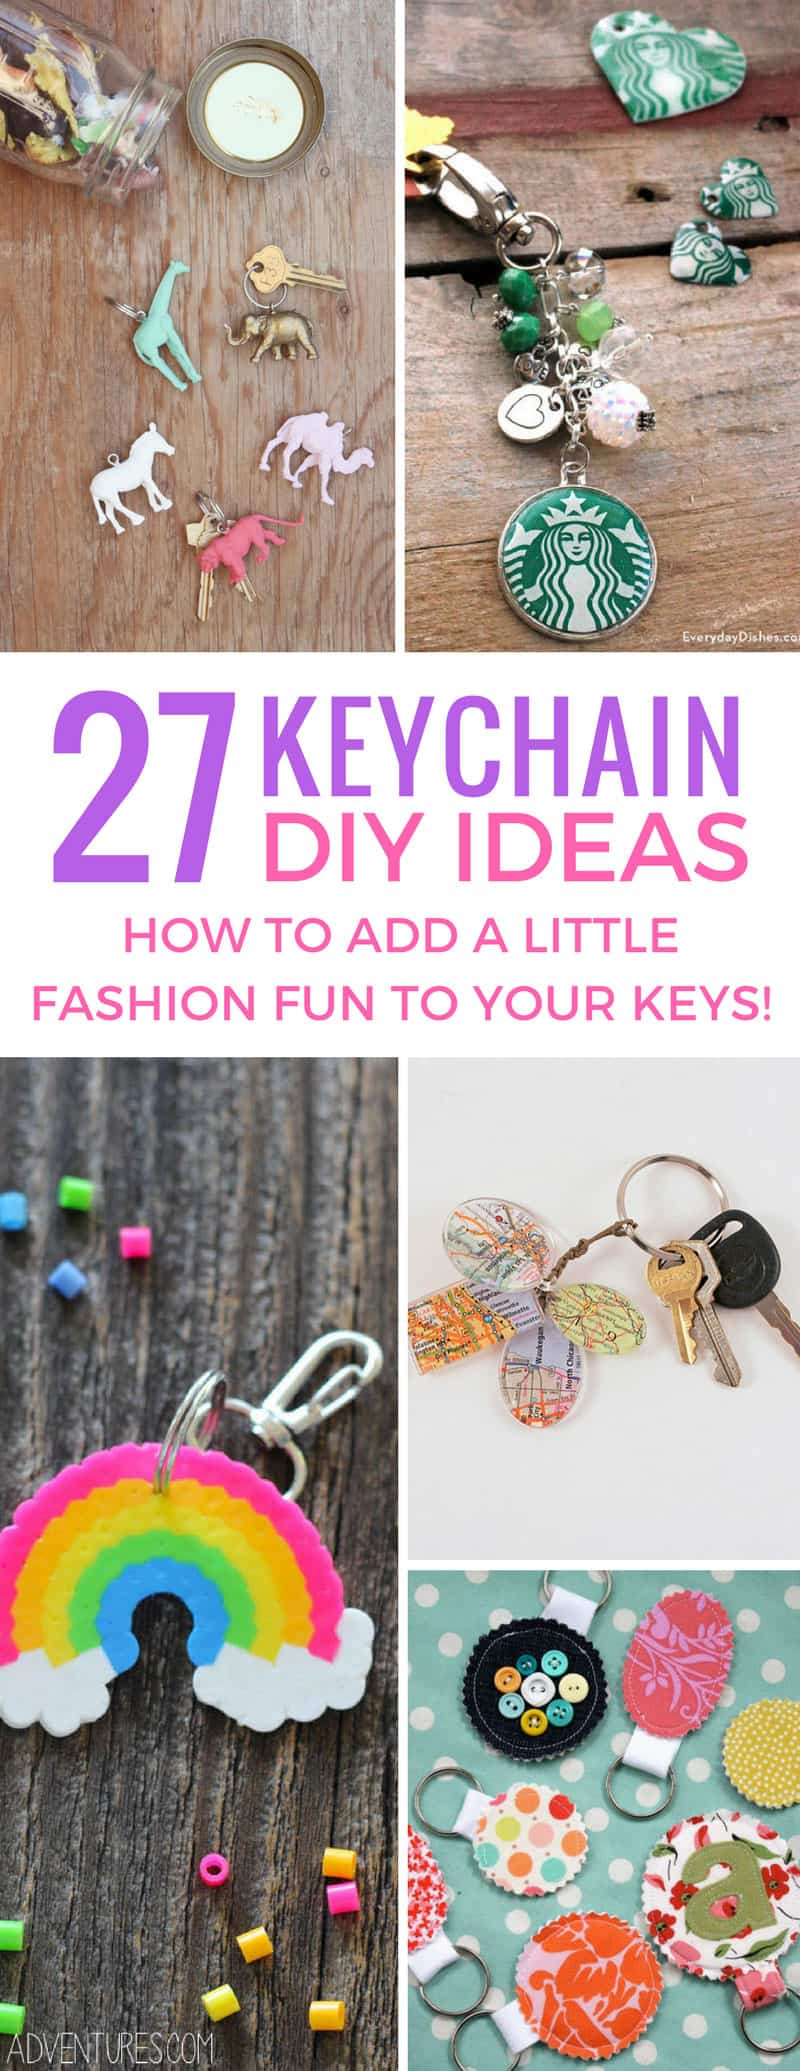 These DIY keychain ideas are brilliant - and they'll make fabulous handmade gifts for Christmas! Thanks for sharing!